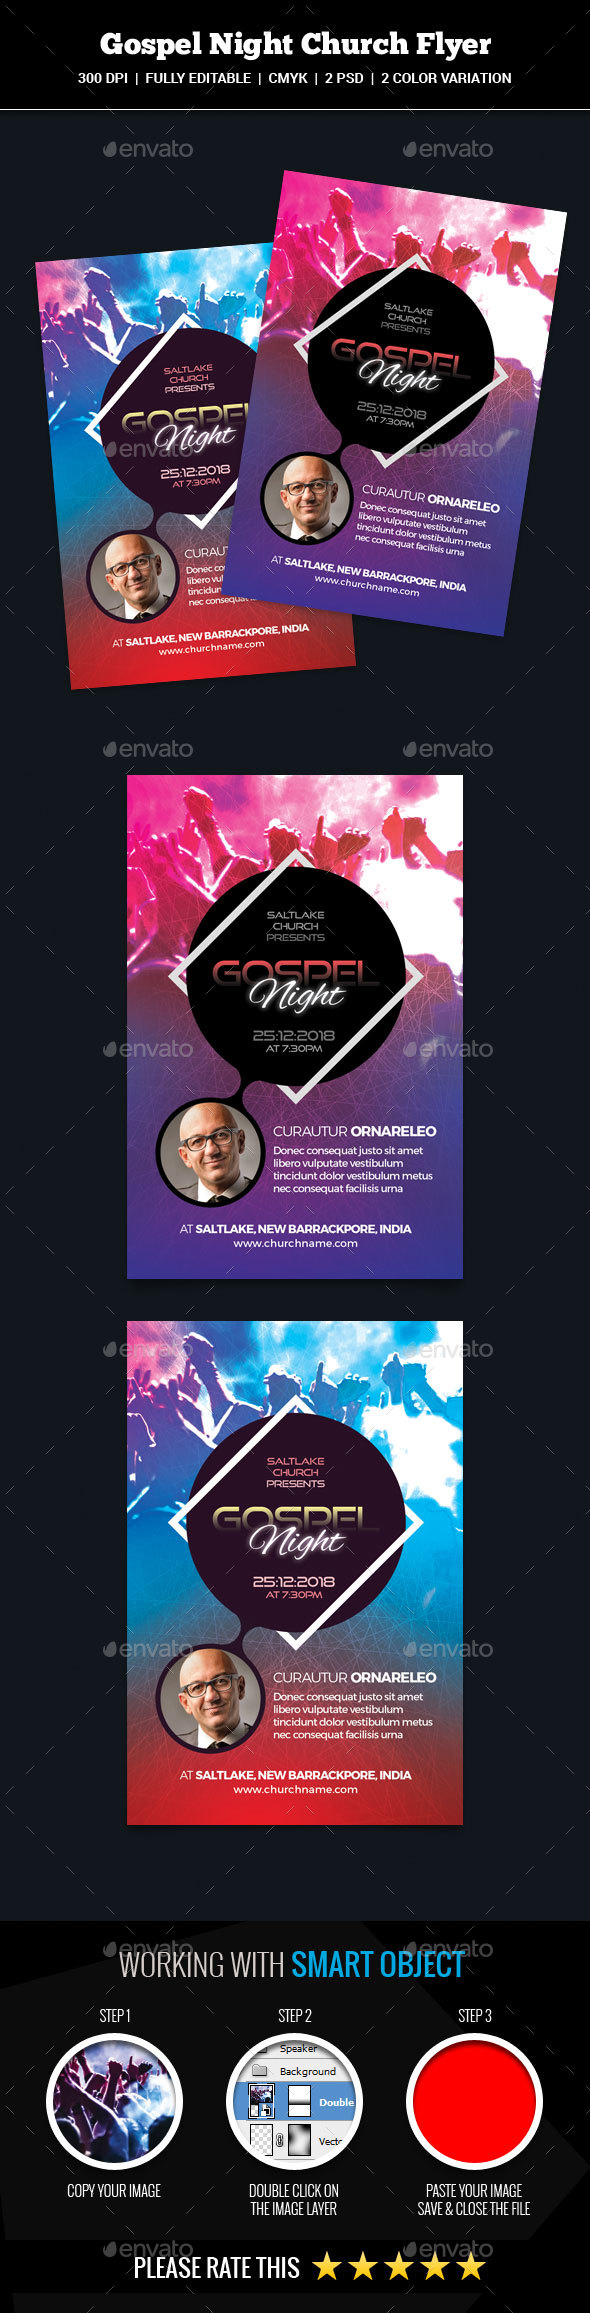 Gospel Night Church Flyer - Church Flyers